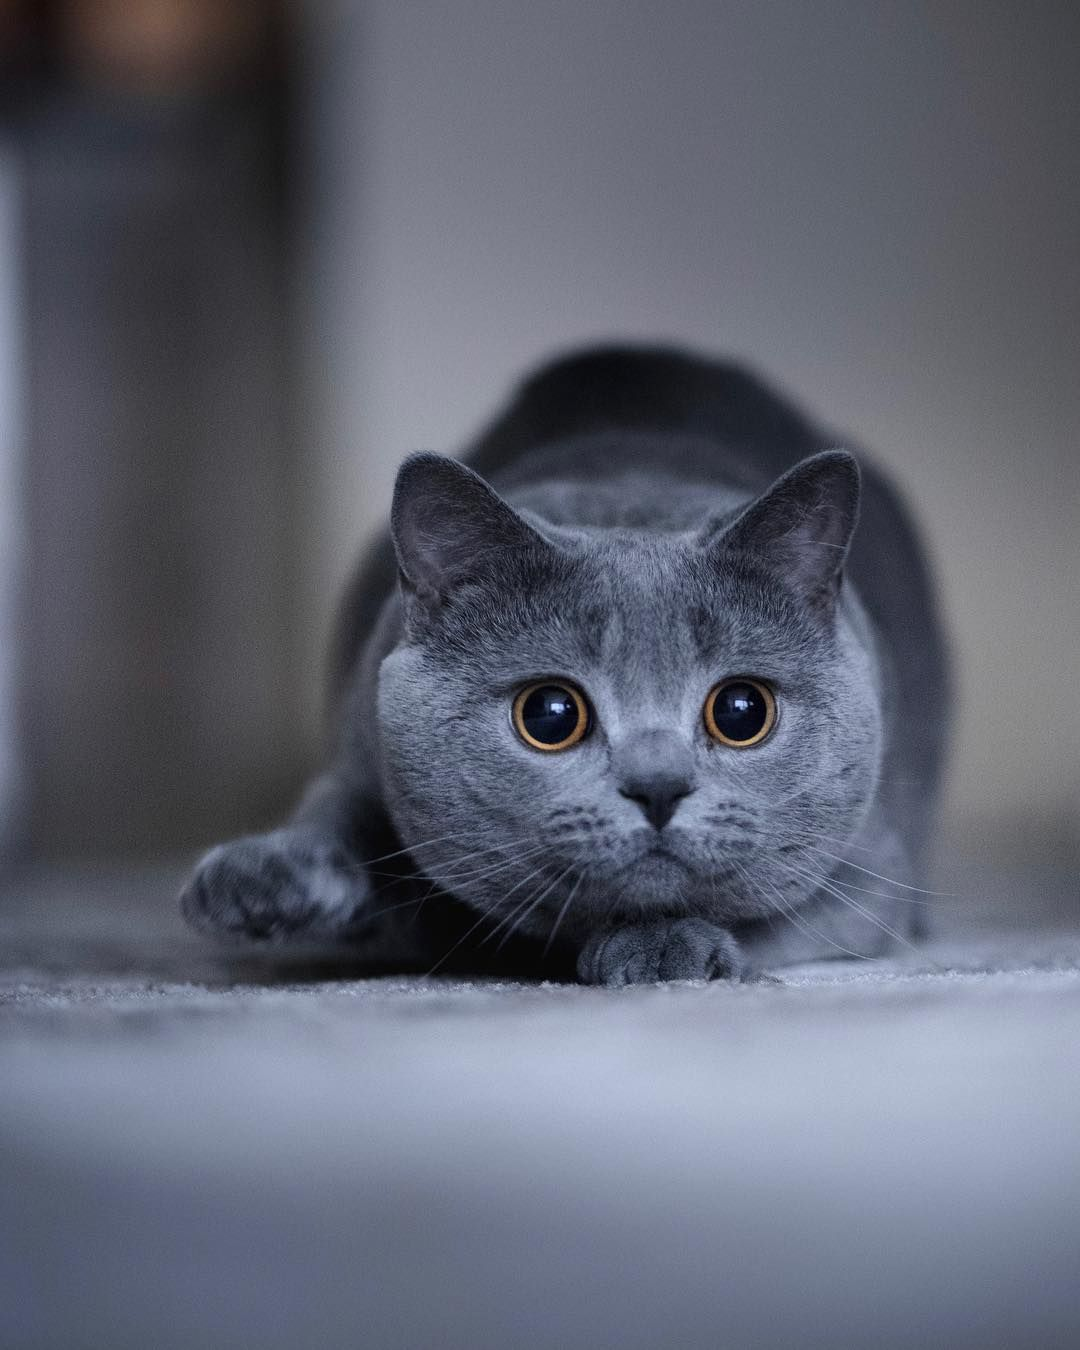 Wolfgang British Shorthair On Instagram Let Me Show You The Dance Of My People British Shorthair Kittens British Shorthair British Shorthair Cats